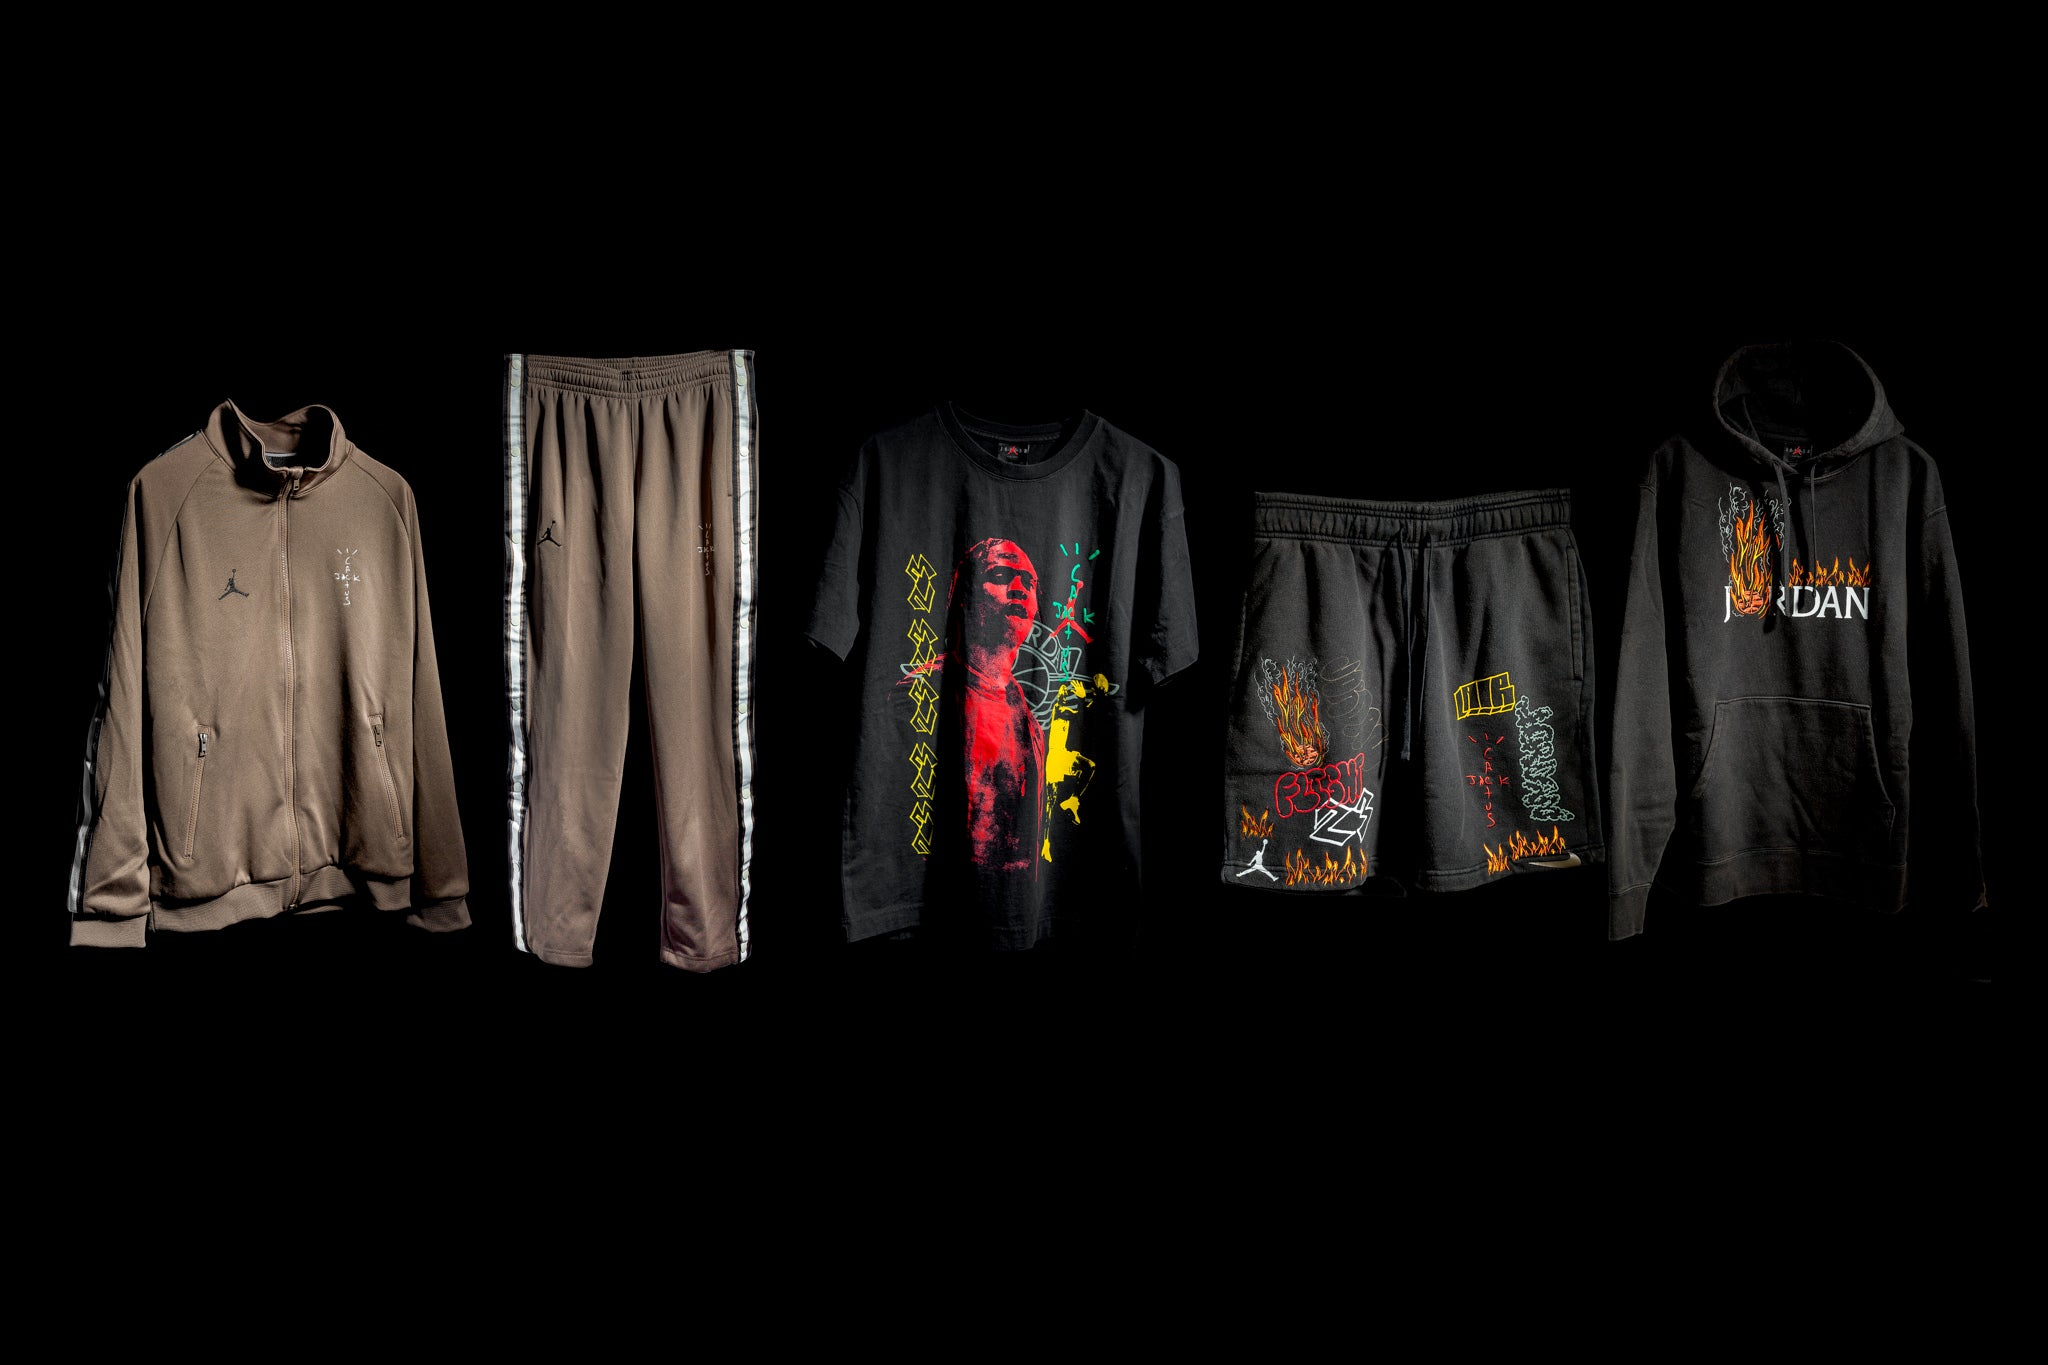 767e263453c To compliment the Cactus Jack Air Jordan 1, Travis Scott and Jordan design  a five piece apparel collection loaded with La Flame's merch-styled  graphics.